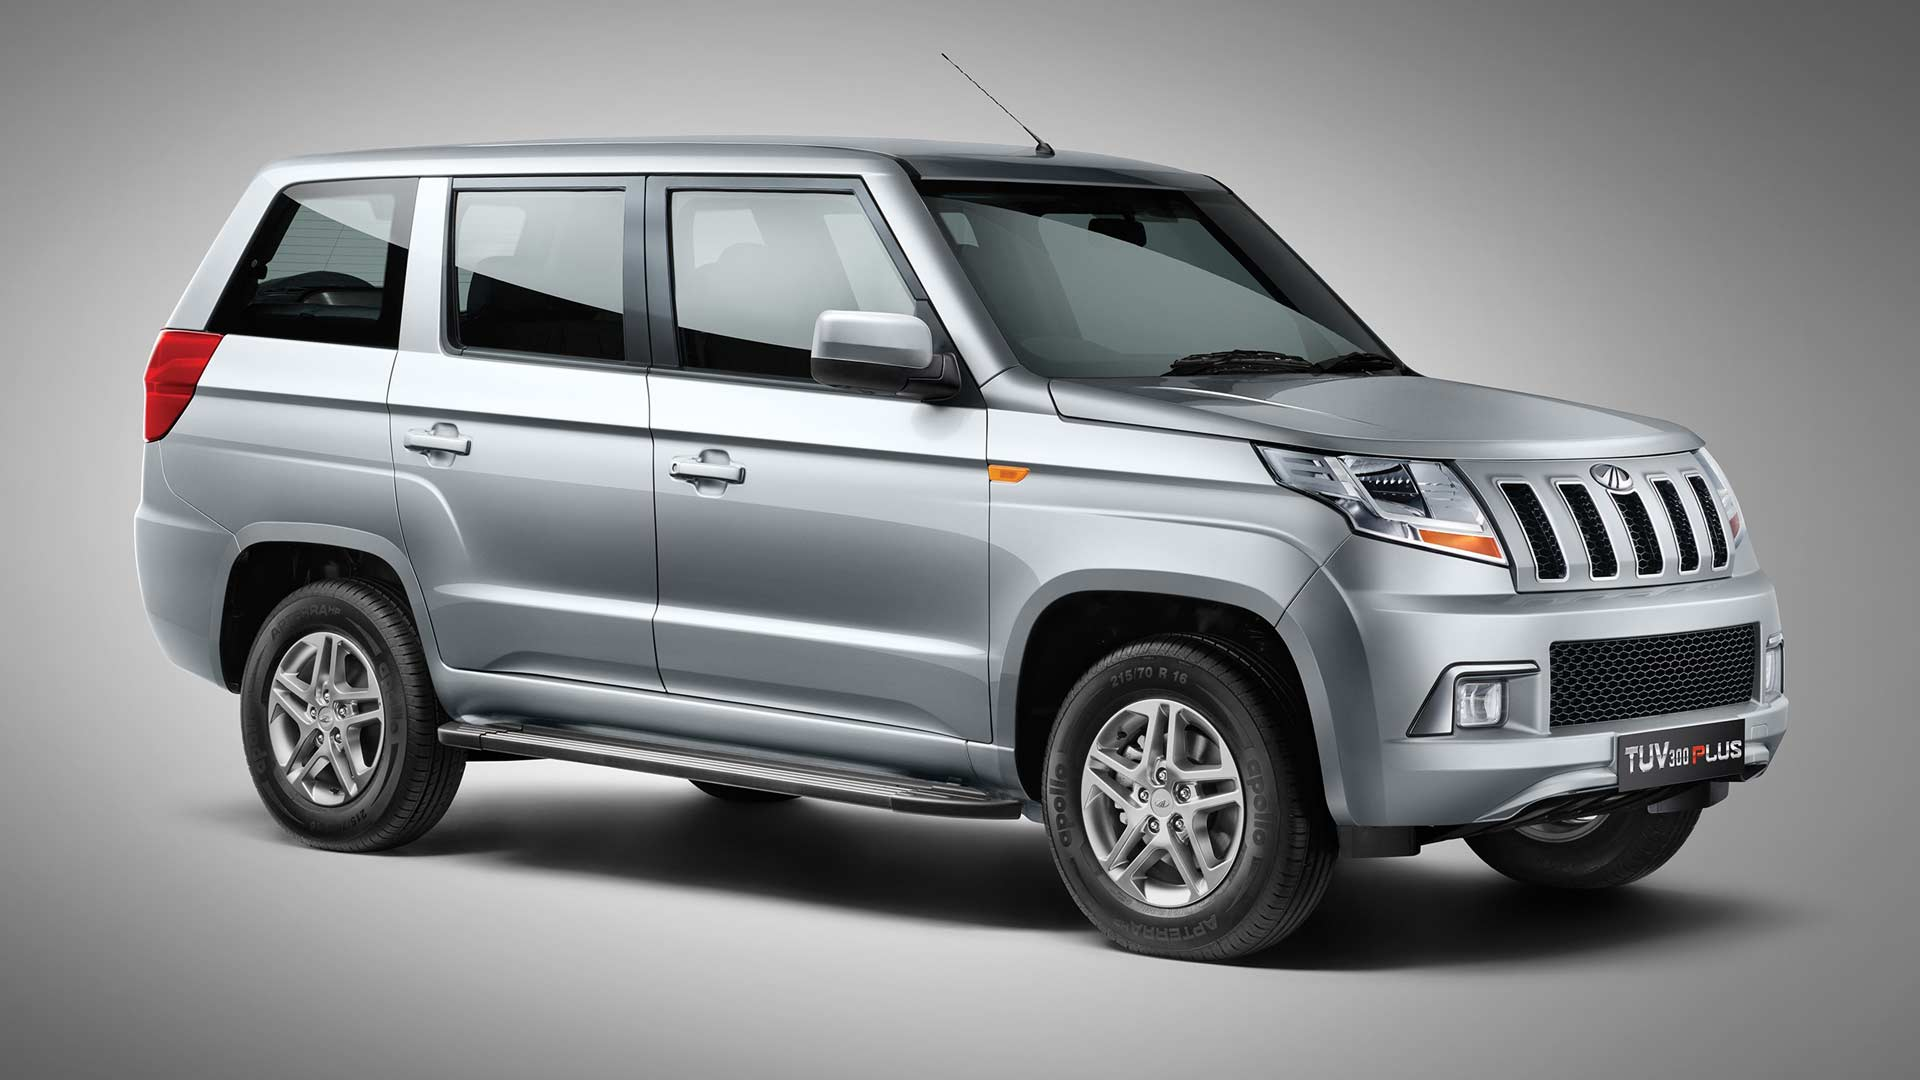 9 Seater Mahindra Tuv300 Plus Launched At Rs 9 47 Lakh